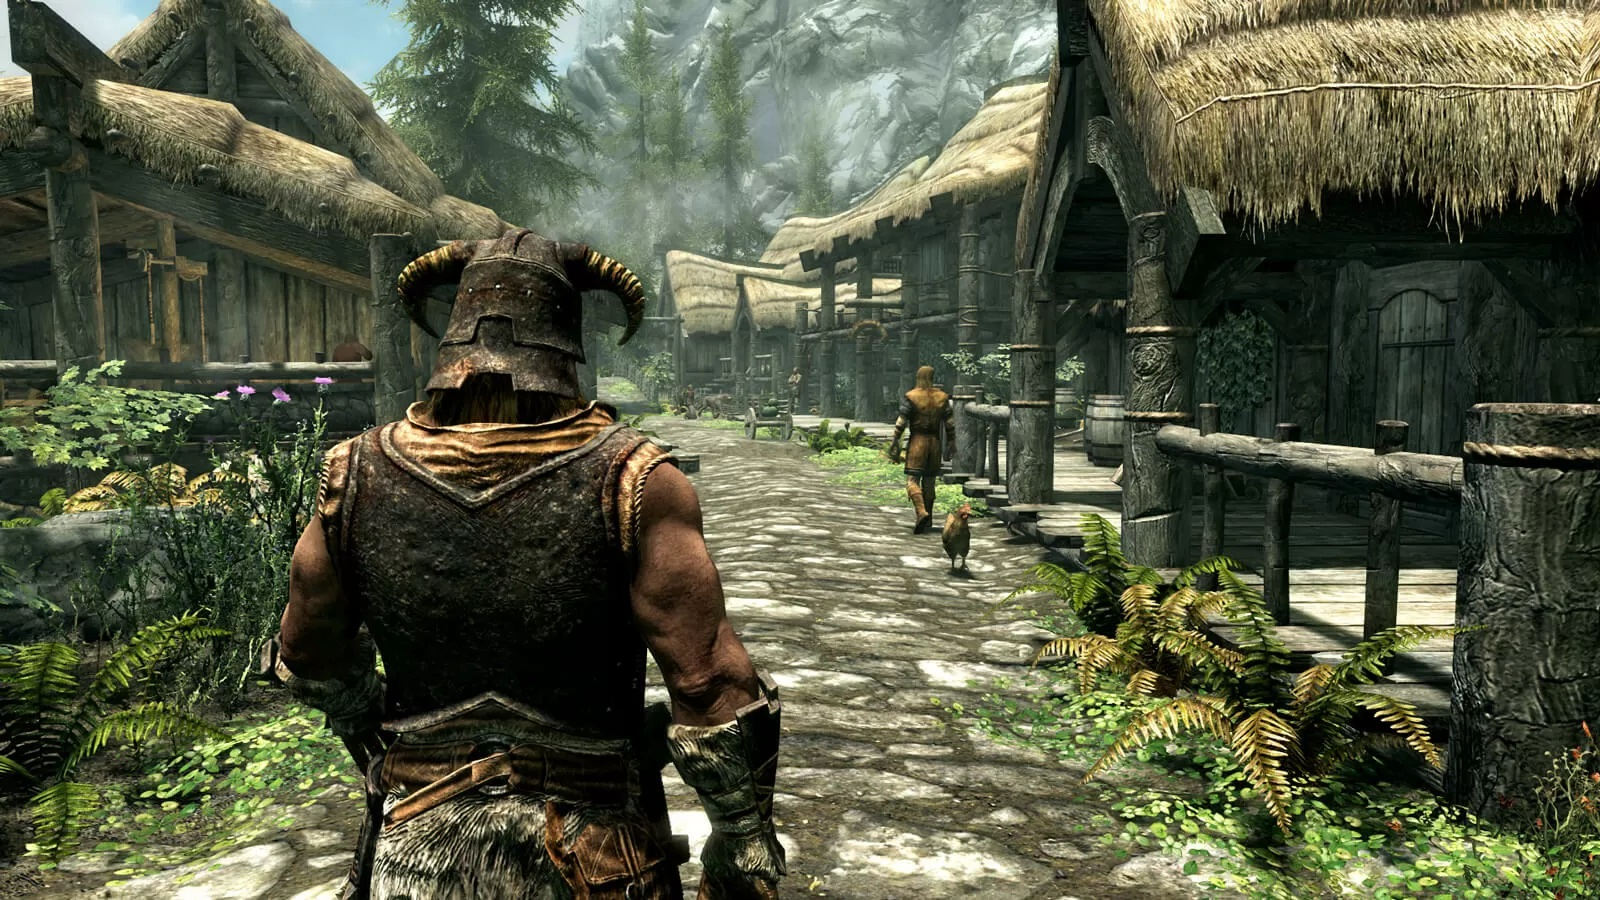 Skyrim on PS5 can now run at 60FPS thanks to mod